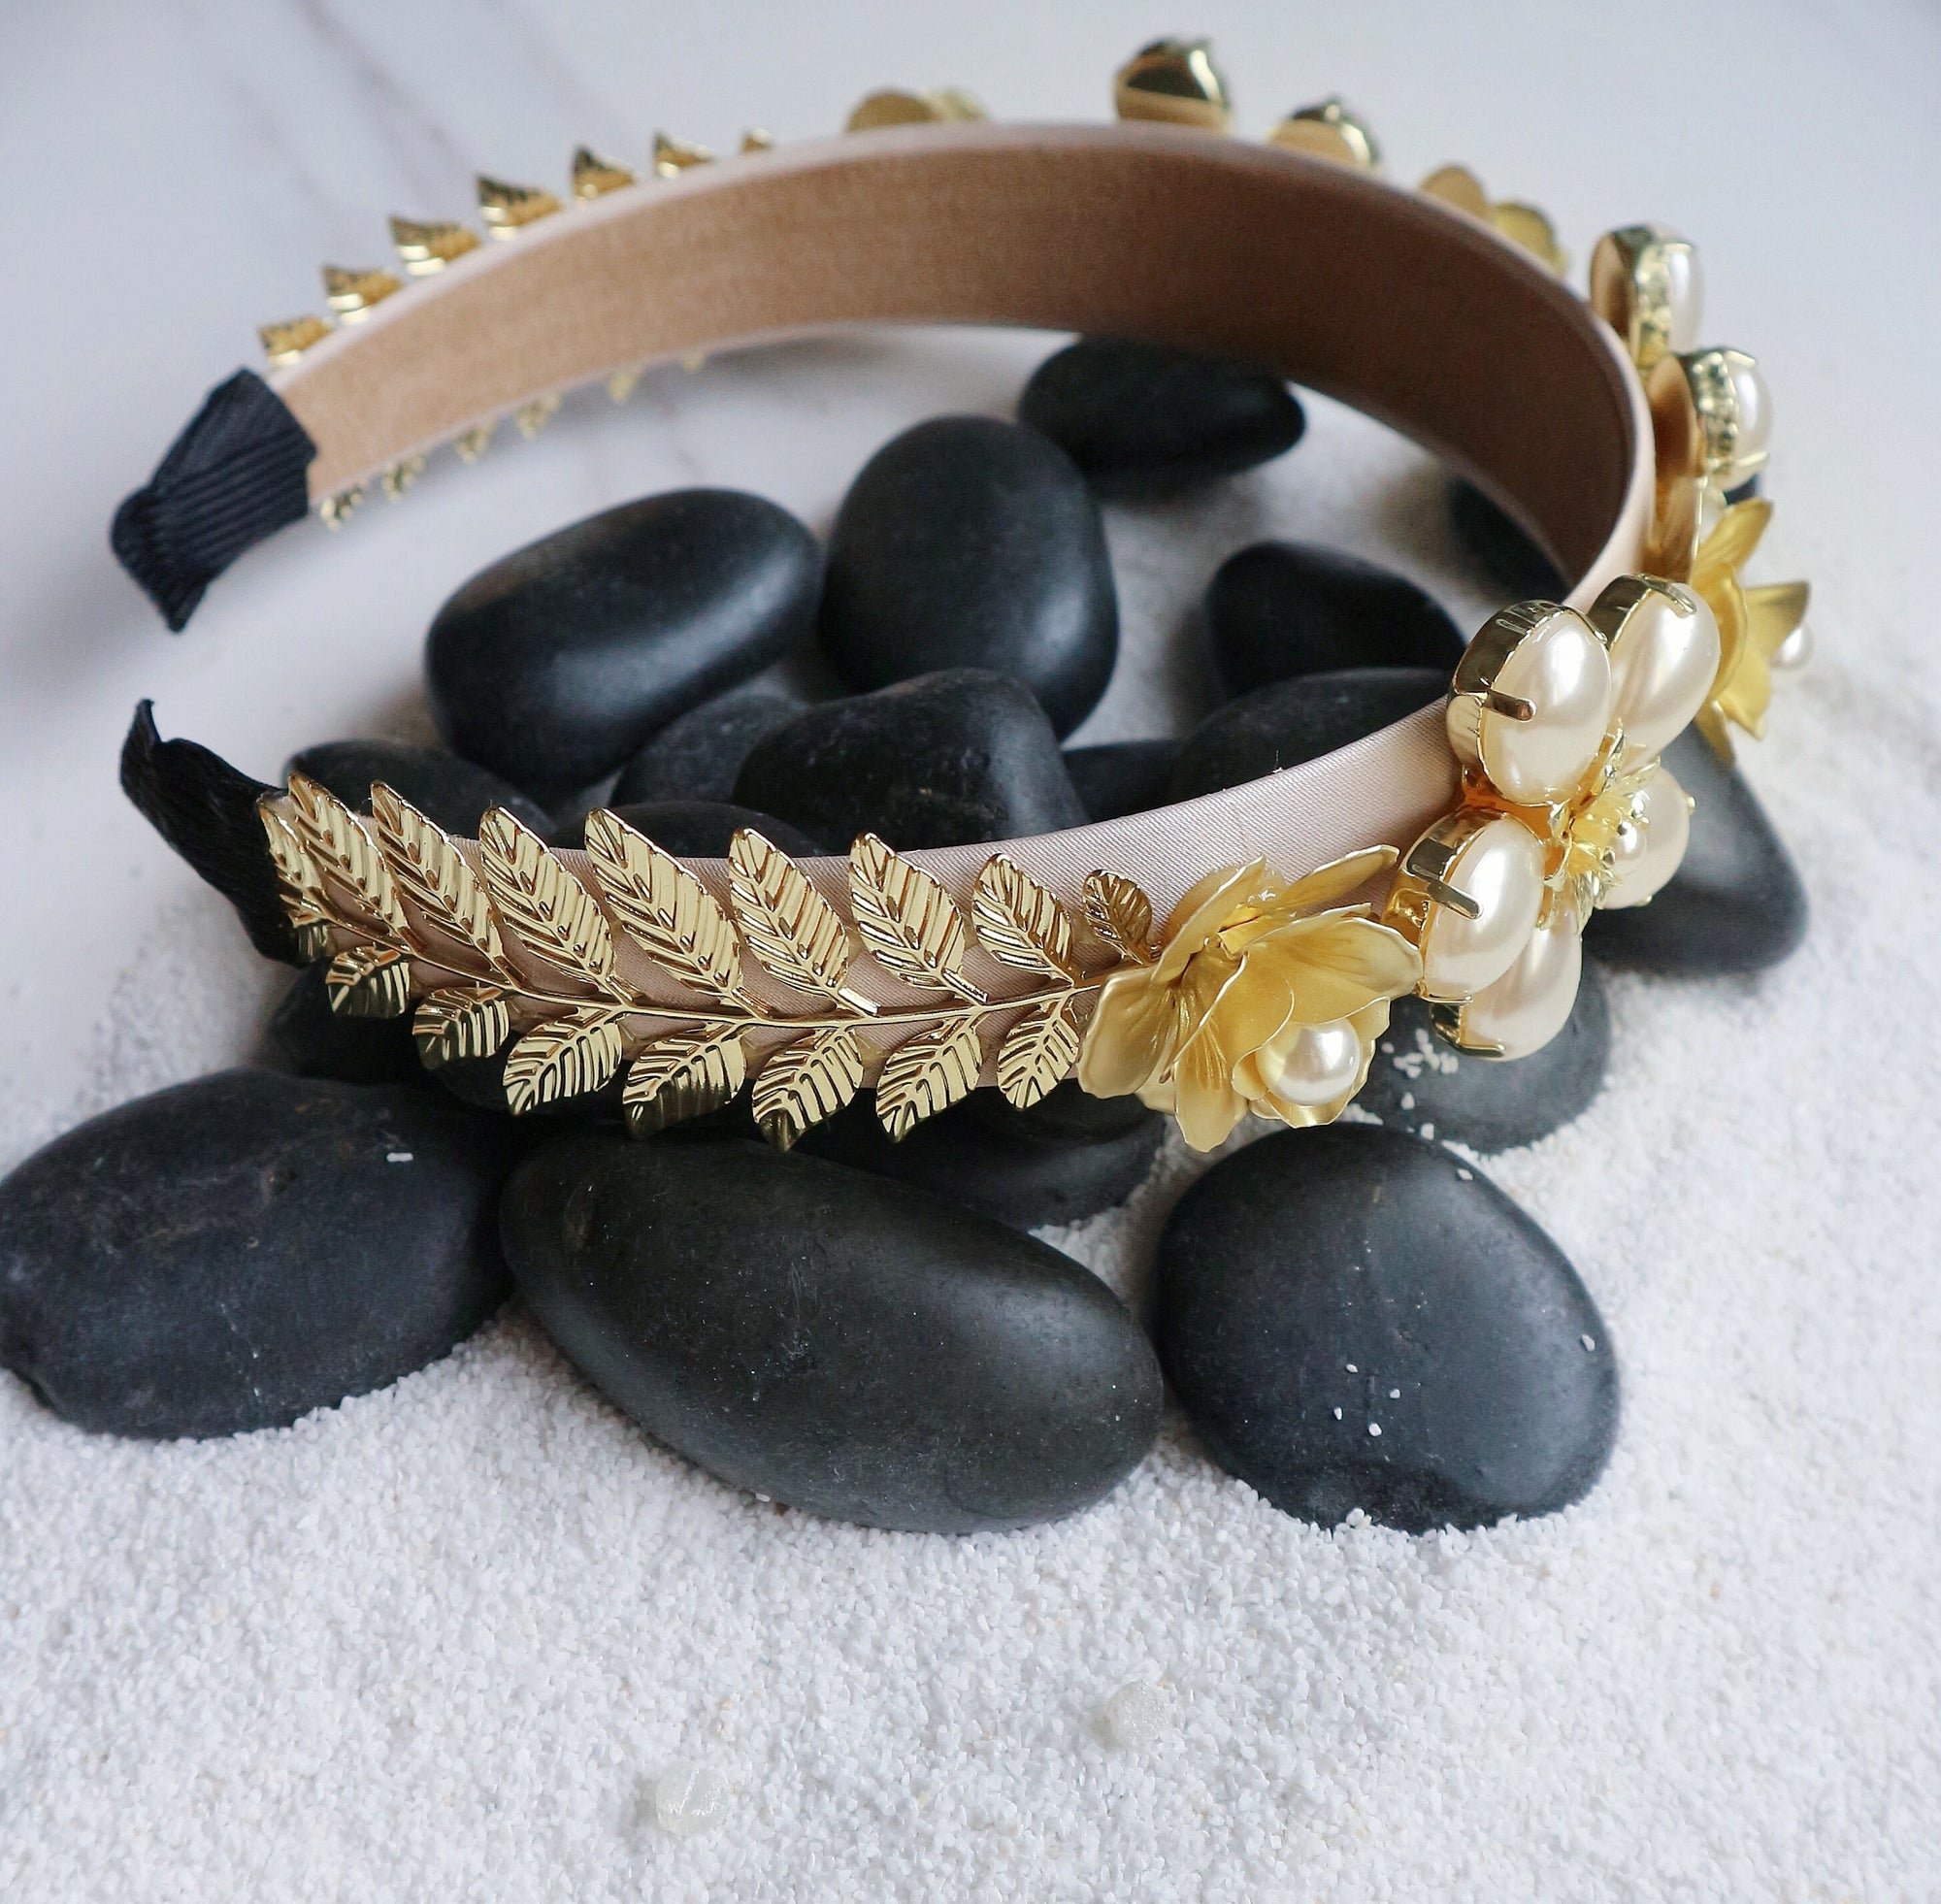 Gold Crown - Statement jewellery by Radiant Riviera